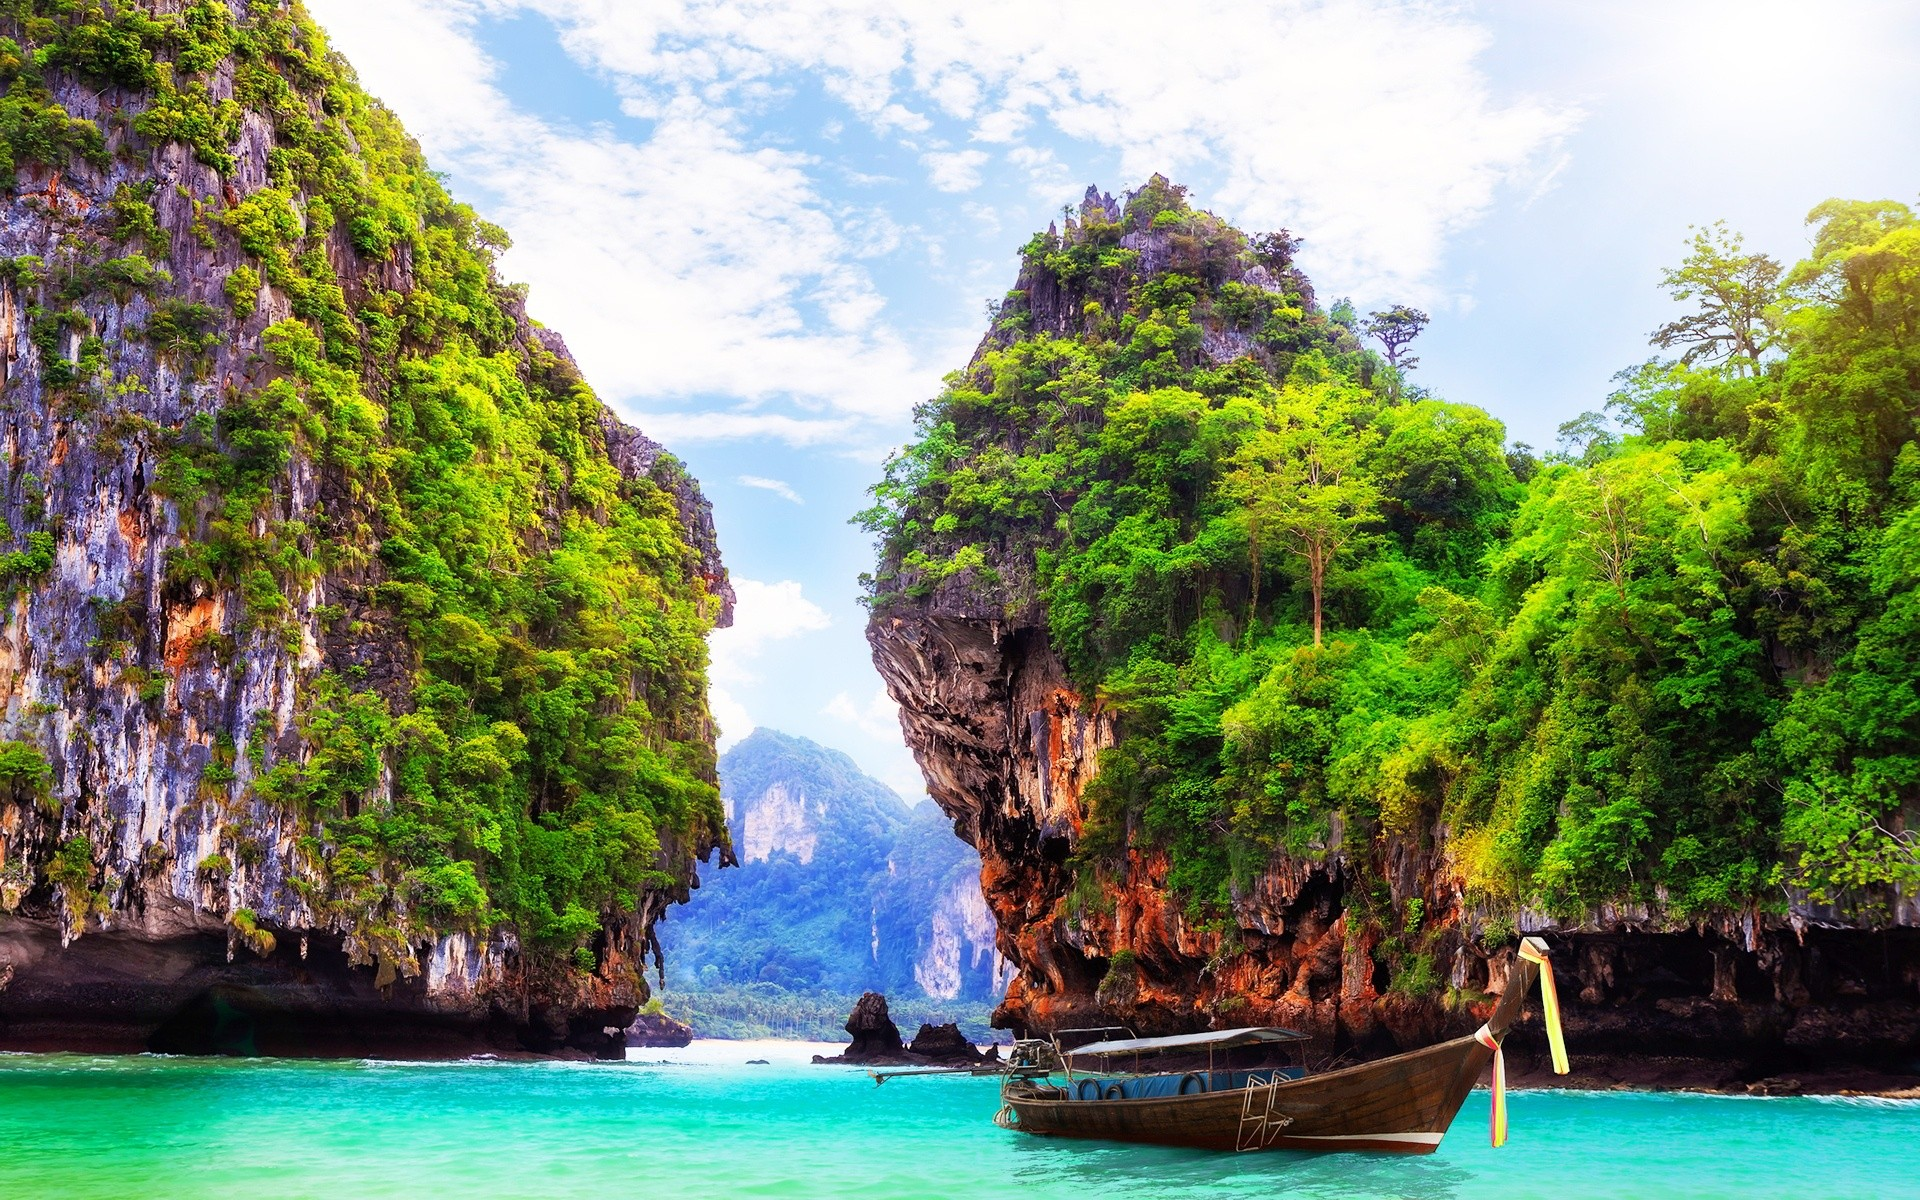 skypark holidays-Exciting Packages of Thailand | Best Thailand Tour Packages from Nepal